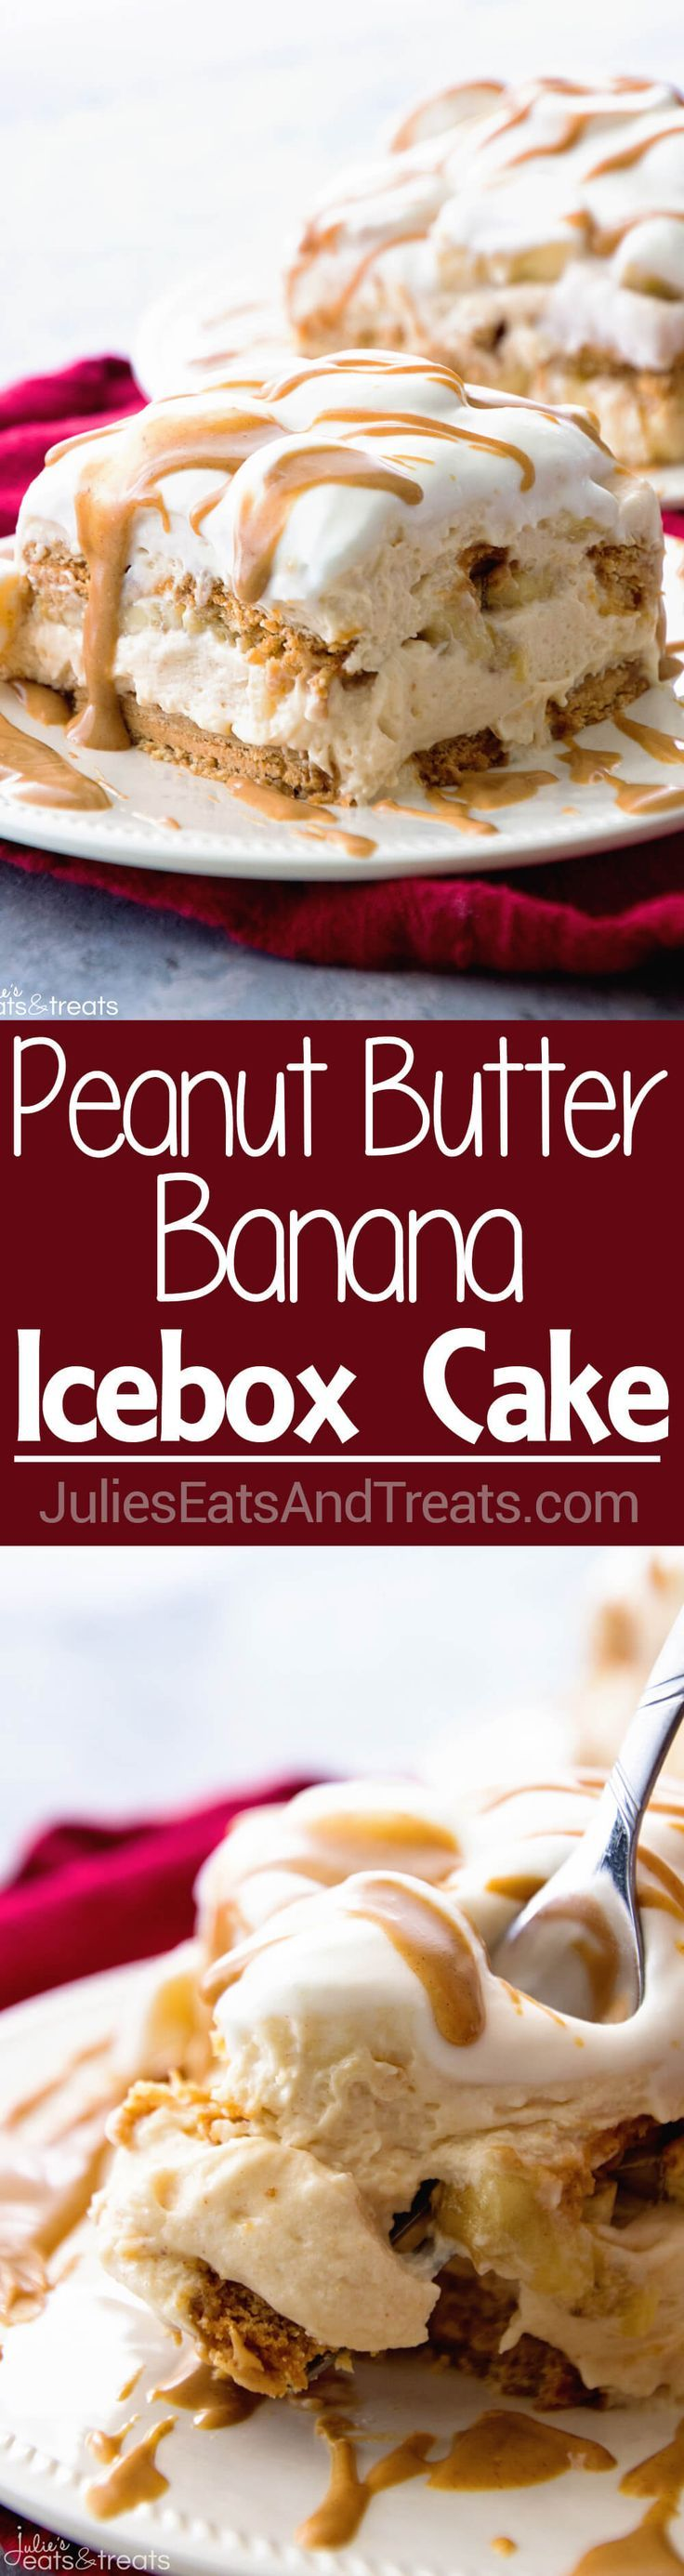 Peanut Butter and Banana Icebox Cake ~ Homemade Light & Fluffy Peanut Butter Mousse Layered with Peanut Butter Cookies and…